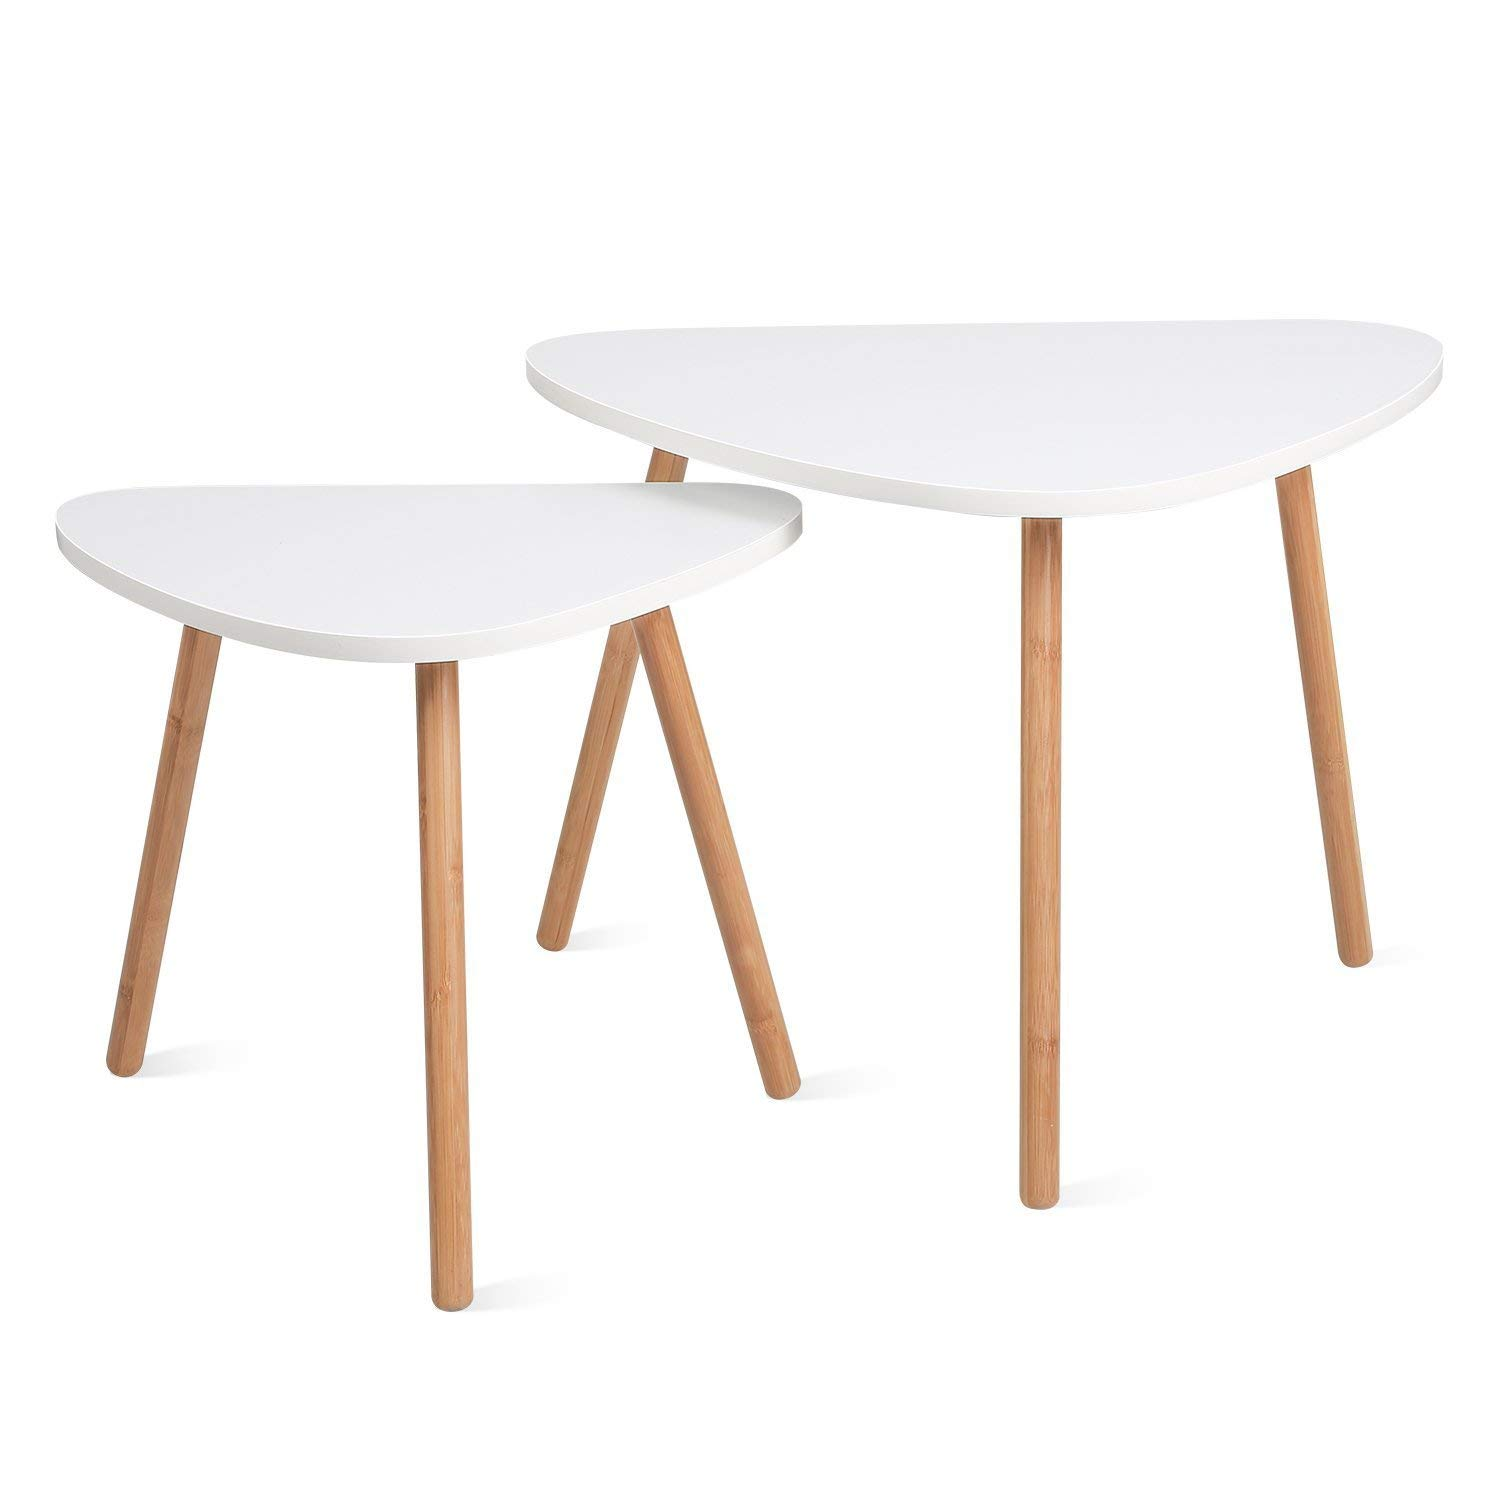 homfa nesting coffee end tables modern decor side table accent under for home and office white set kitchen dining tiffany style lamp with lighted base round telephone back couch